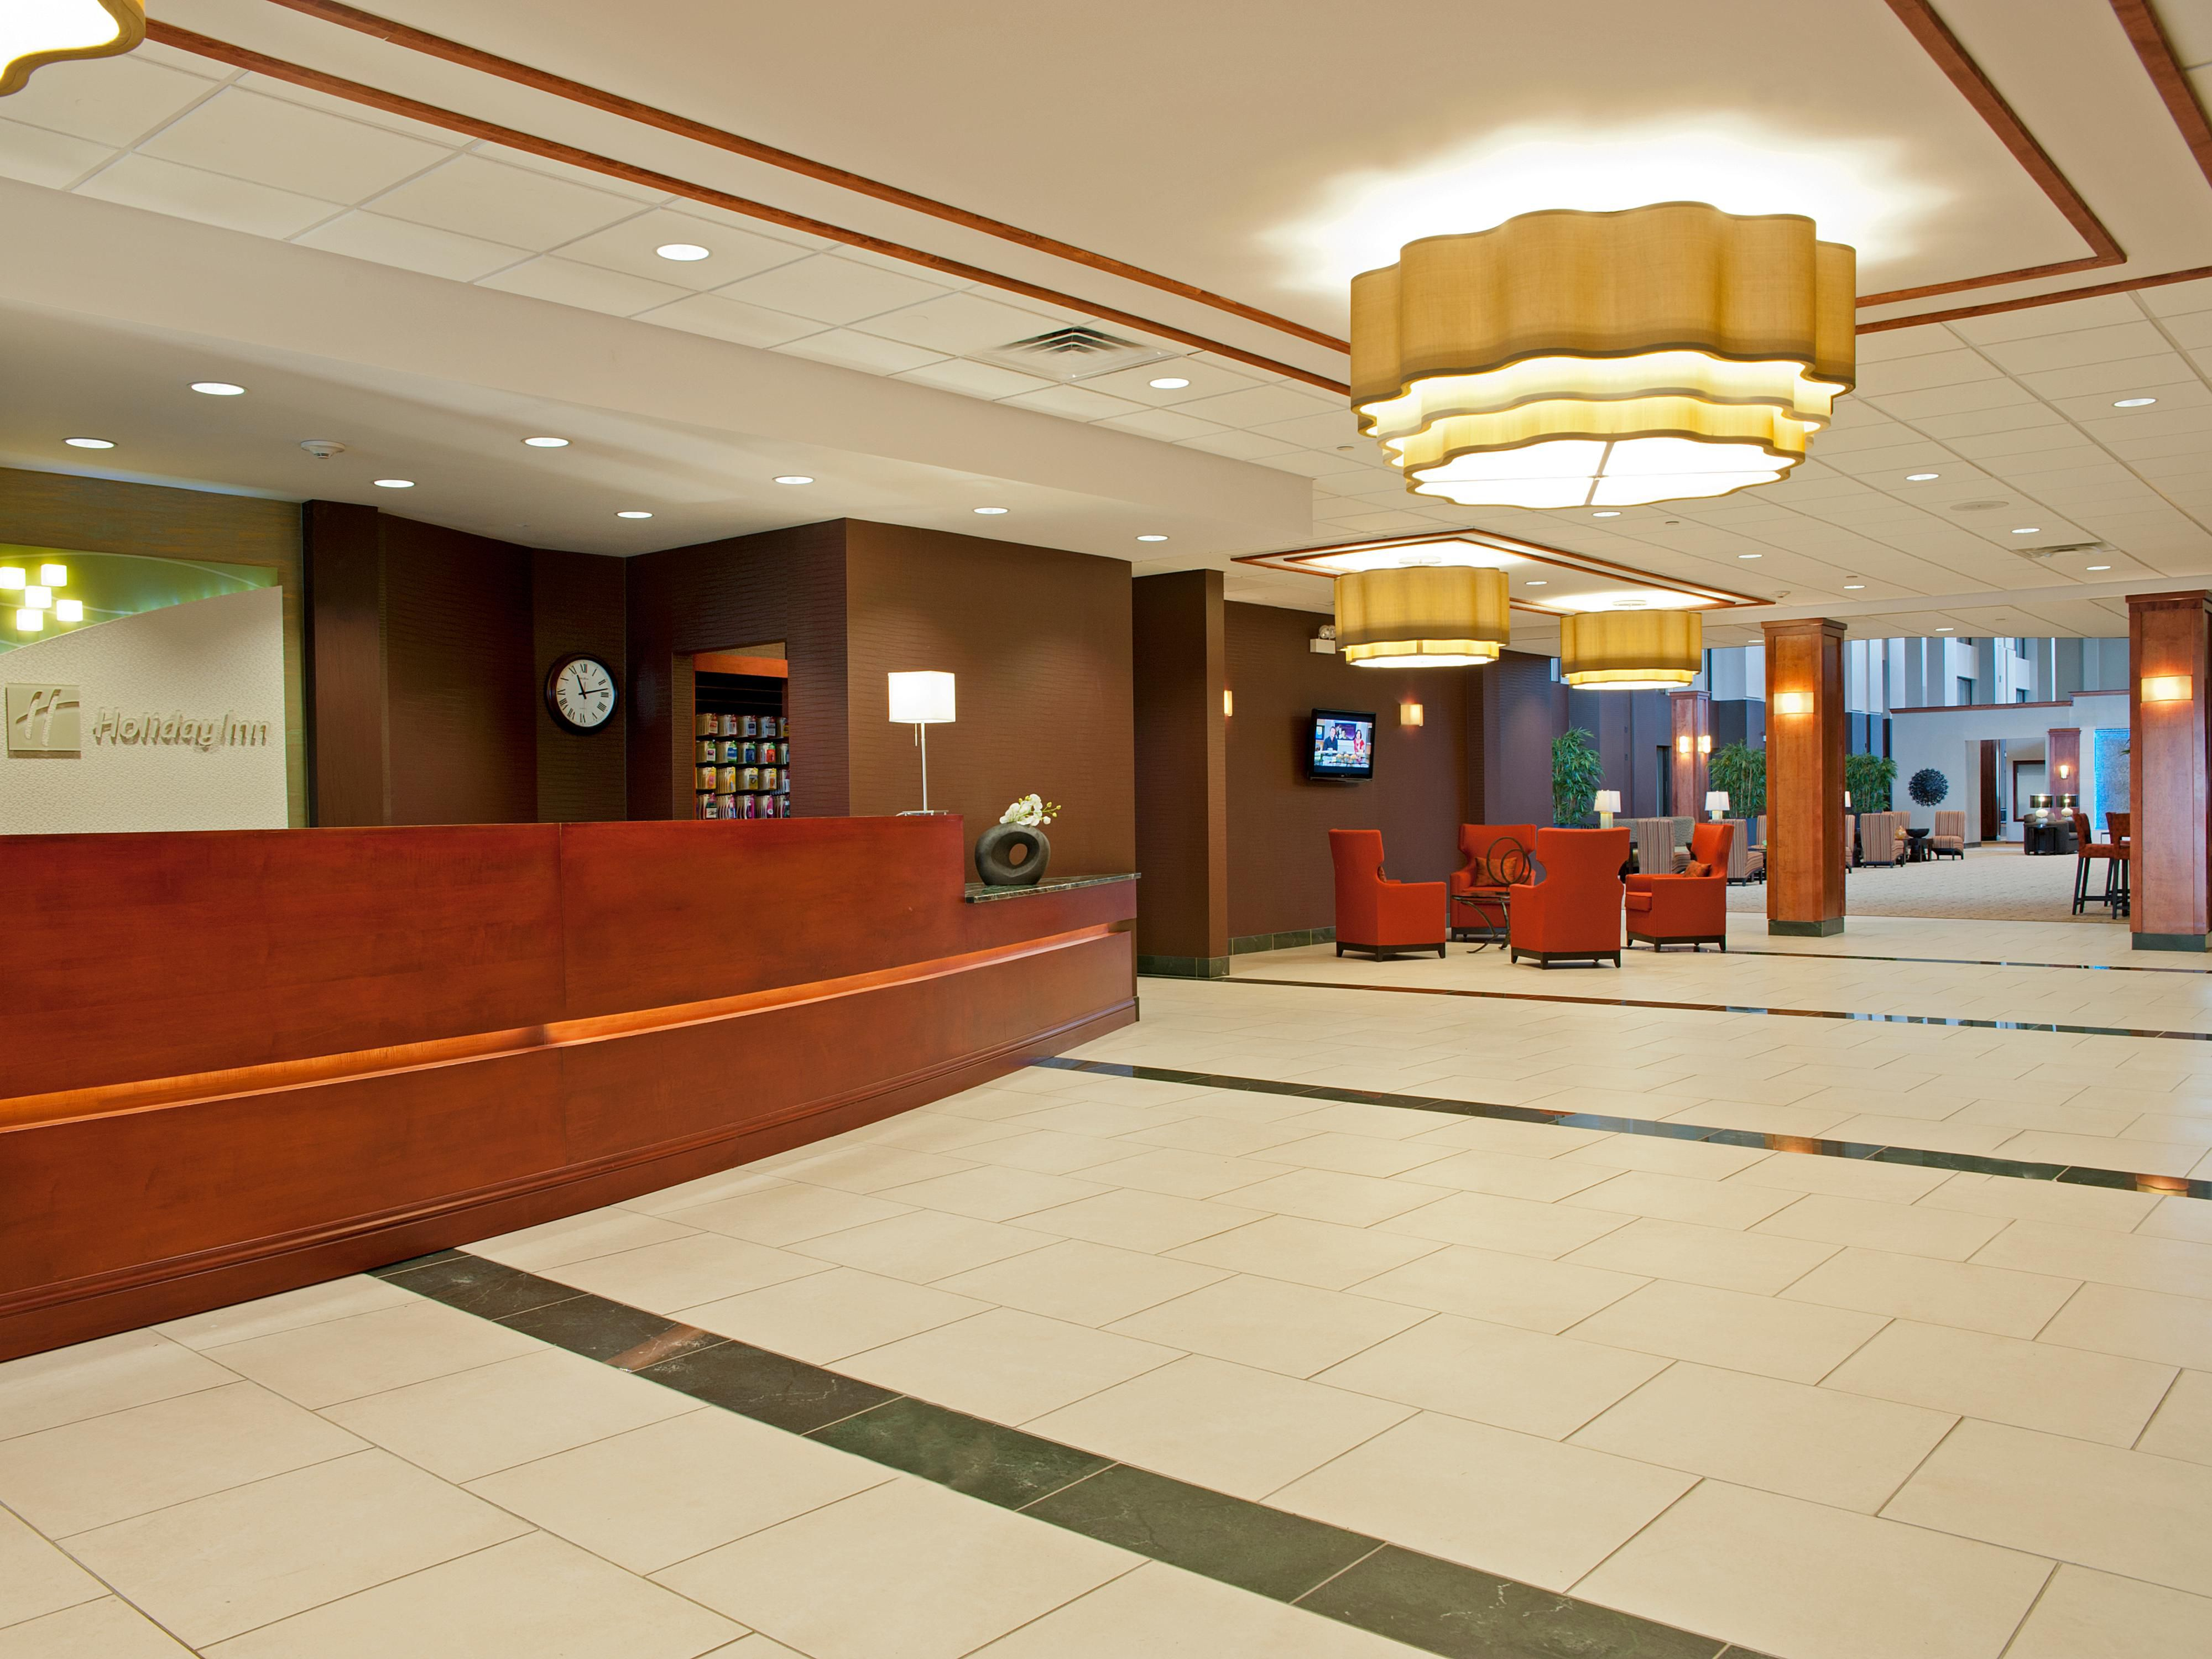 Welcome to the Holiday Inn Chicago West Itasca